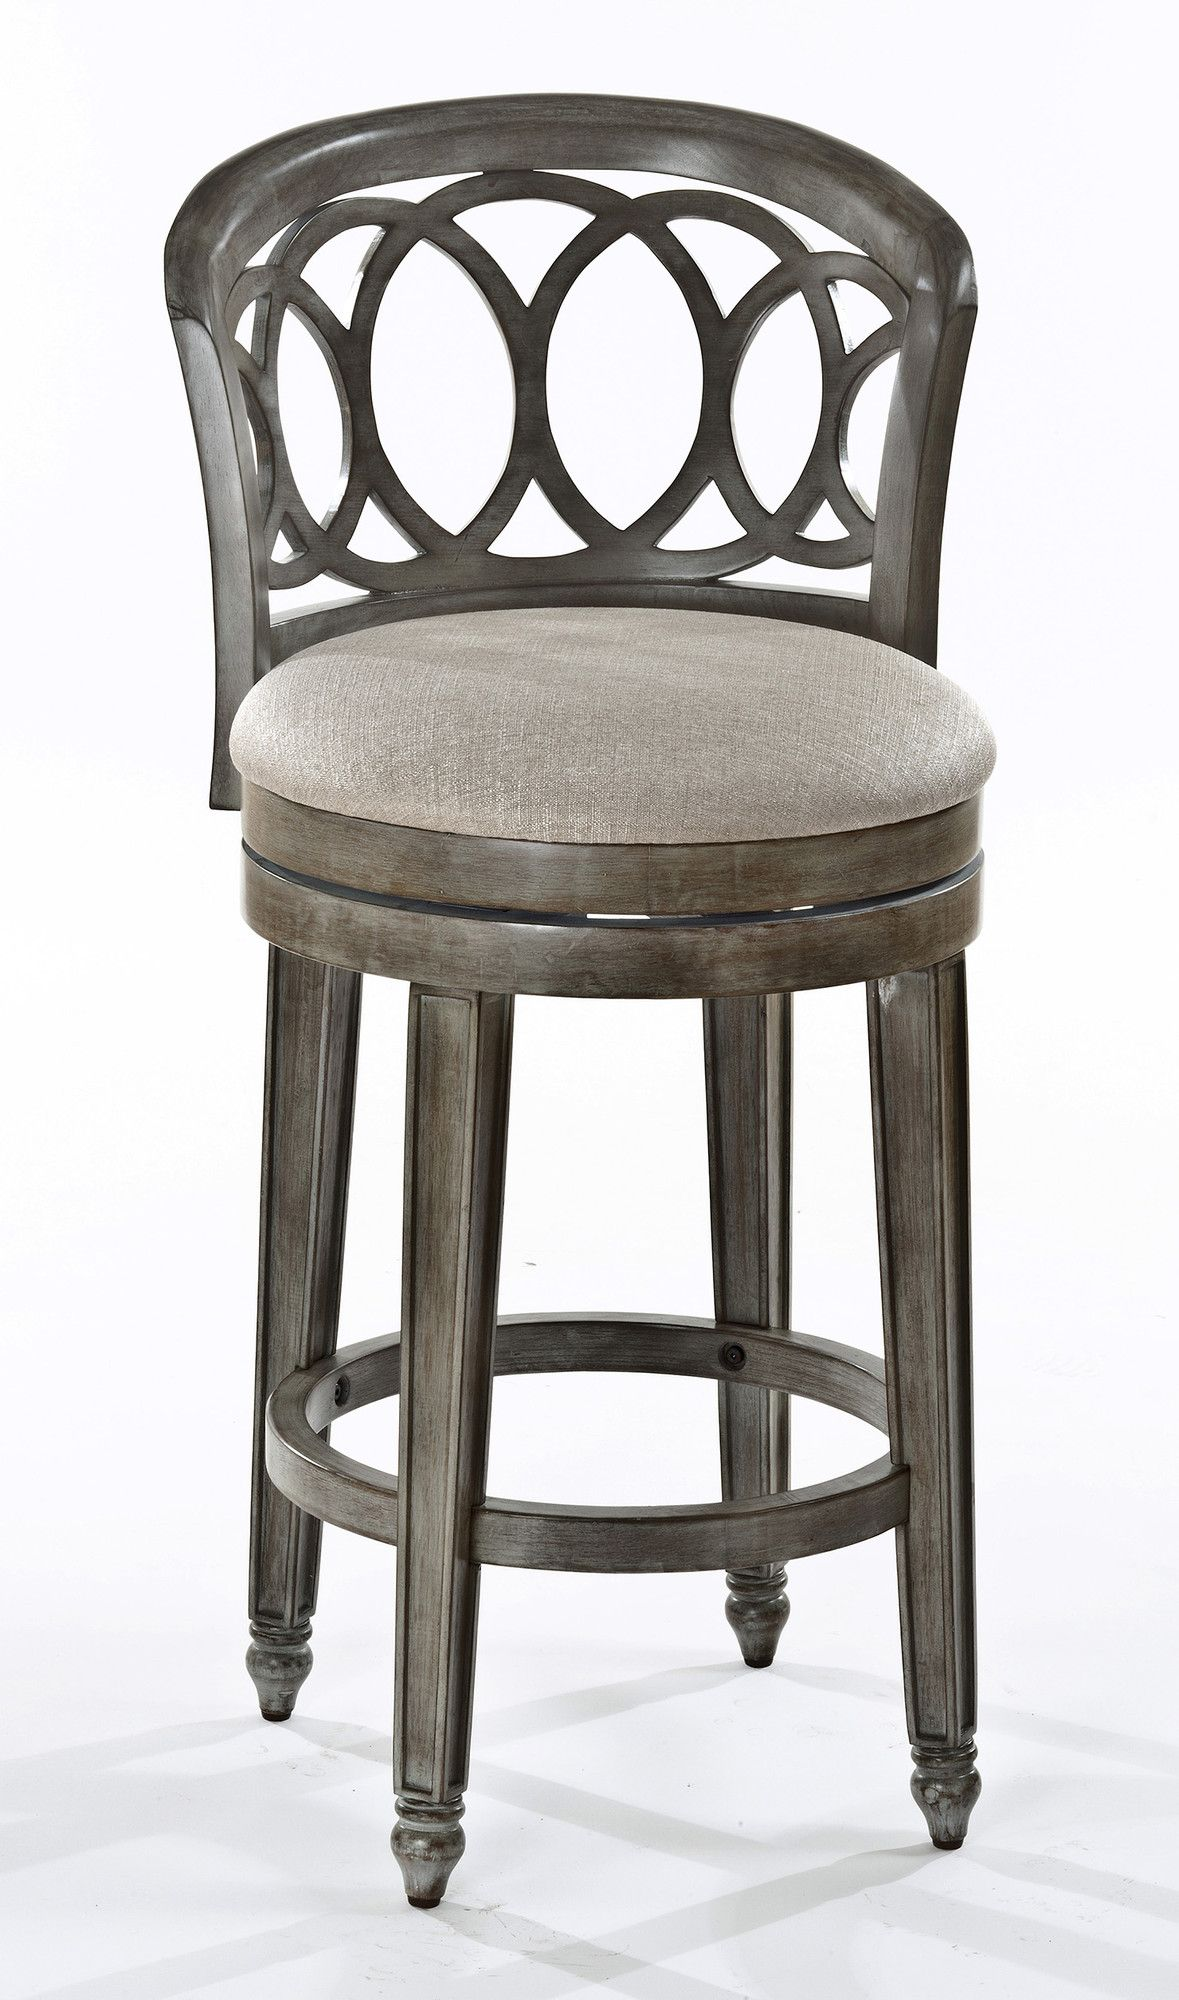 Features Lefkowitz Collection Interlocking Ring Design Has A Putty Finished Seat Covering Distres Swivel Counter Stools Bar Stools Swivel Bar Stools